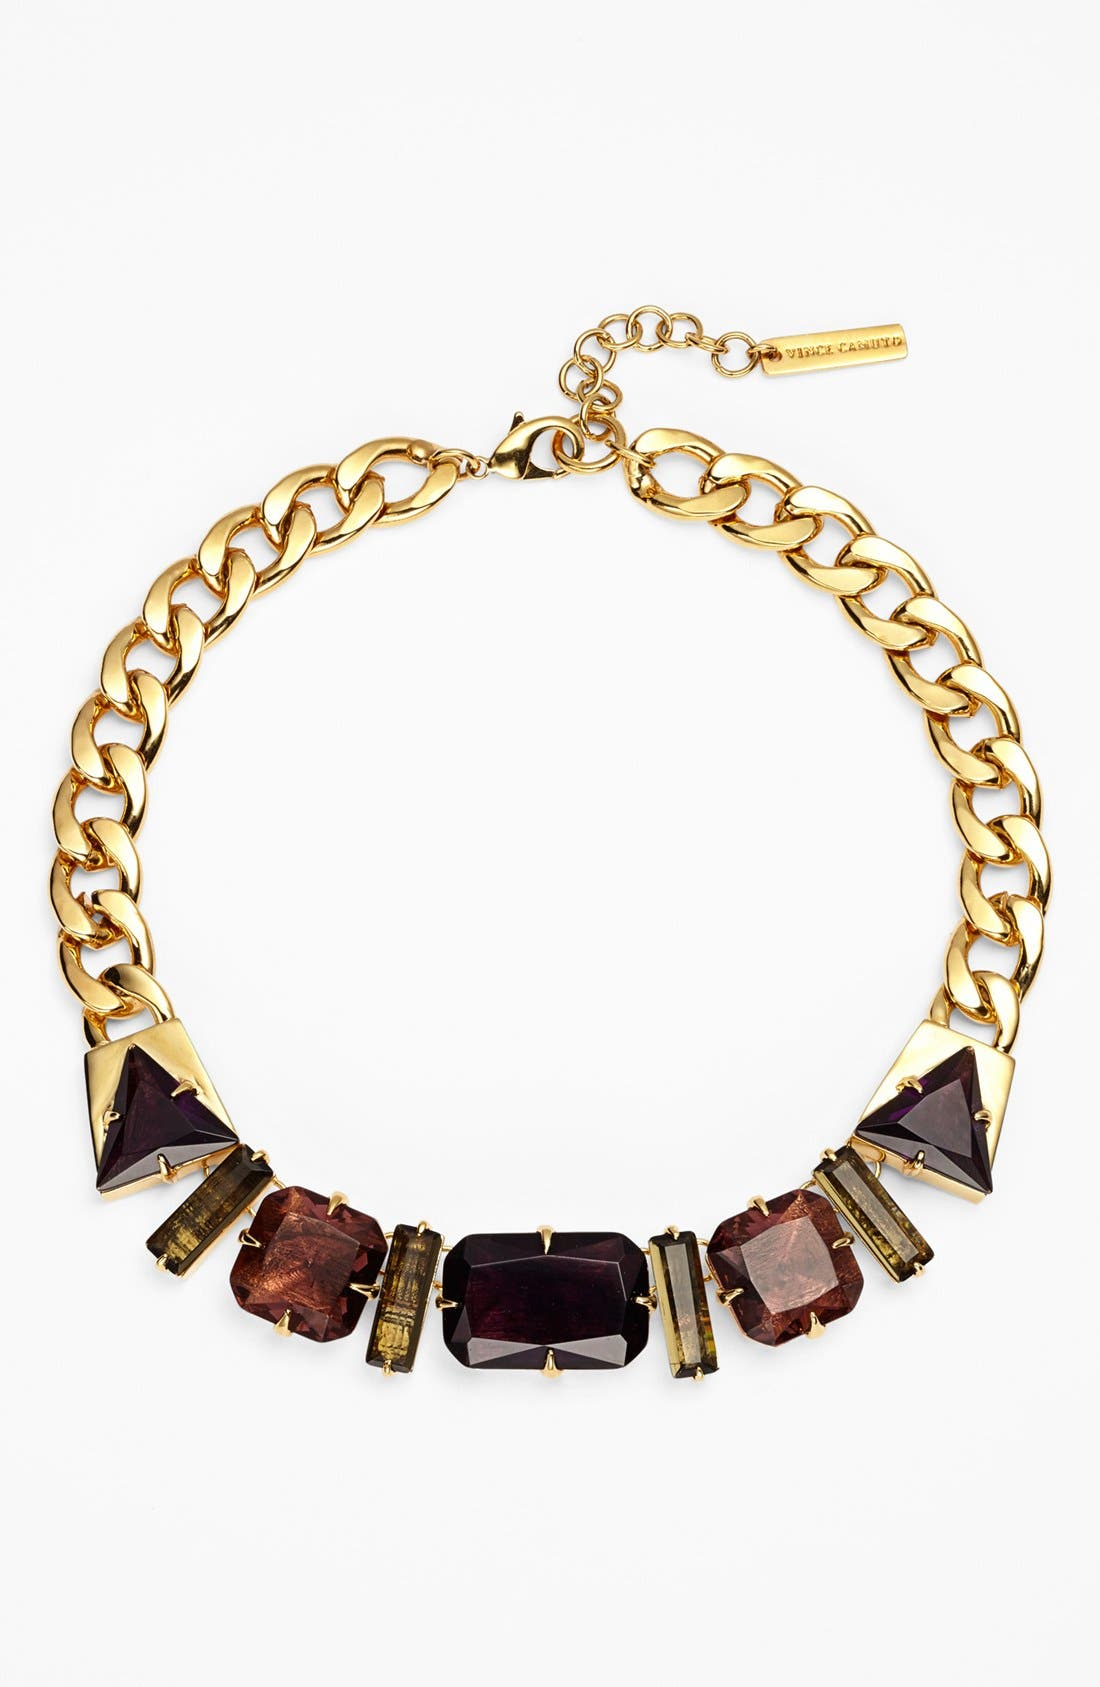 Alternate Image 1 Selected - Vince Camuto 'Jewel Purpose' Stone Link Collar Necklace